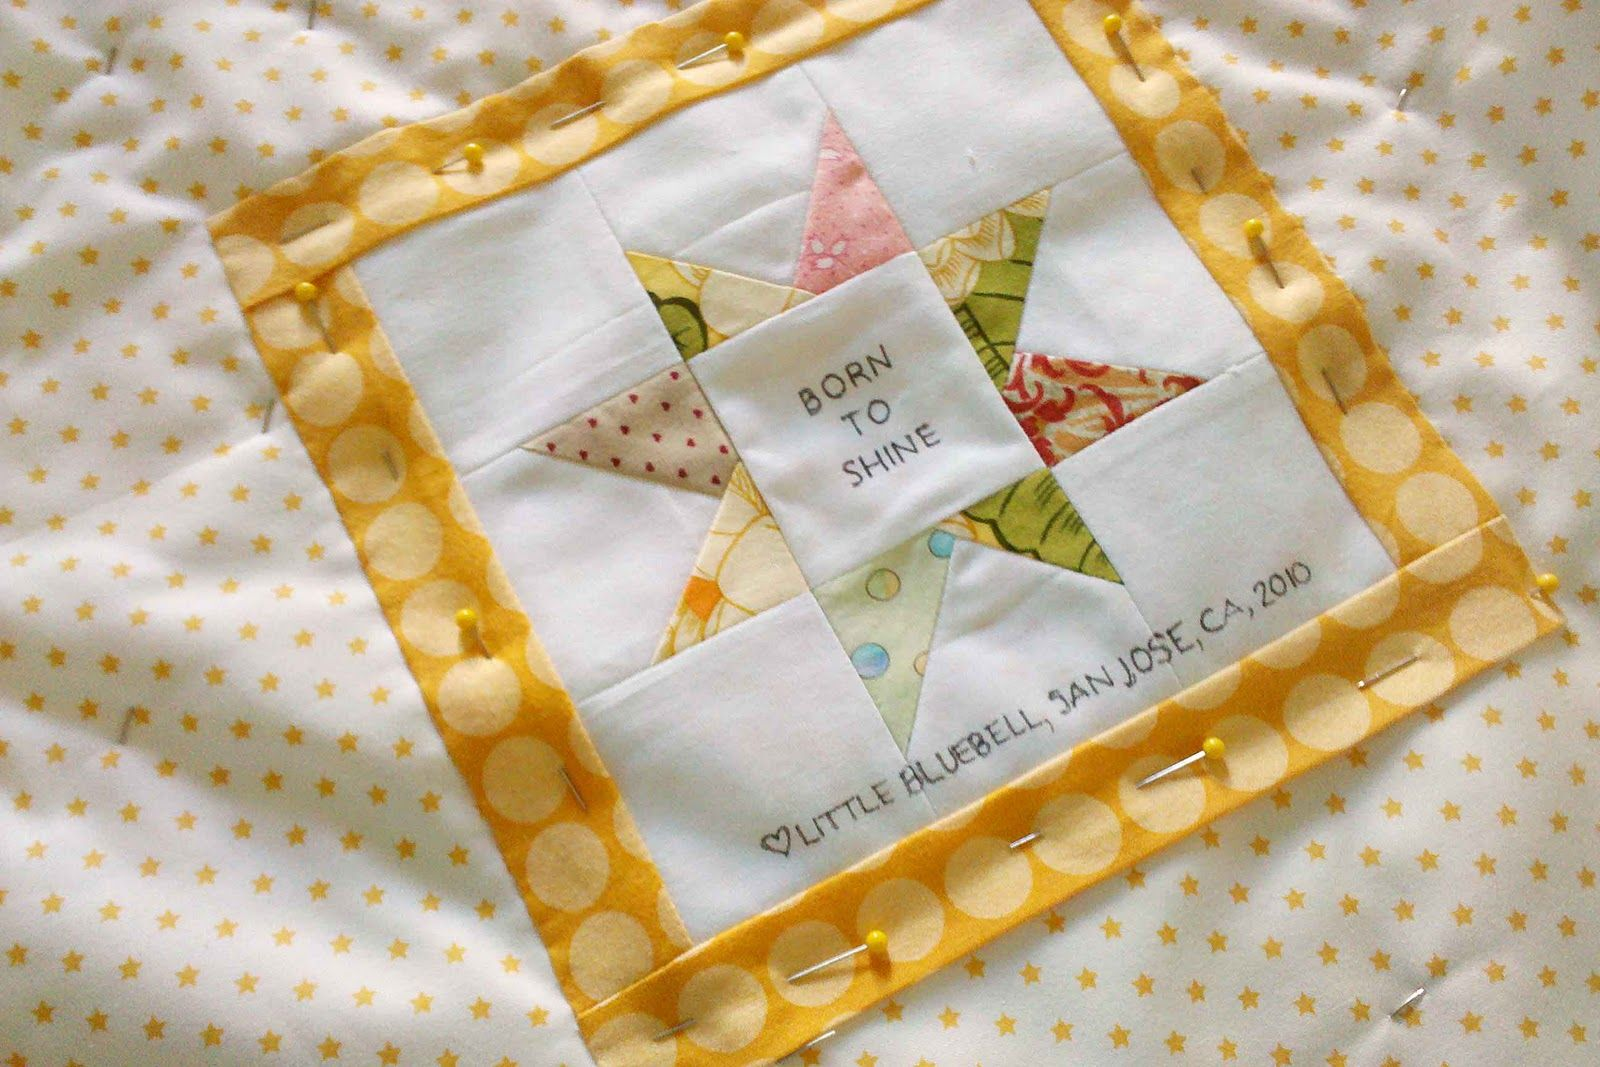 Little Bluebell: Born to Shine #quilt #label